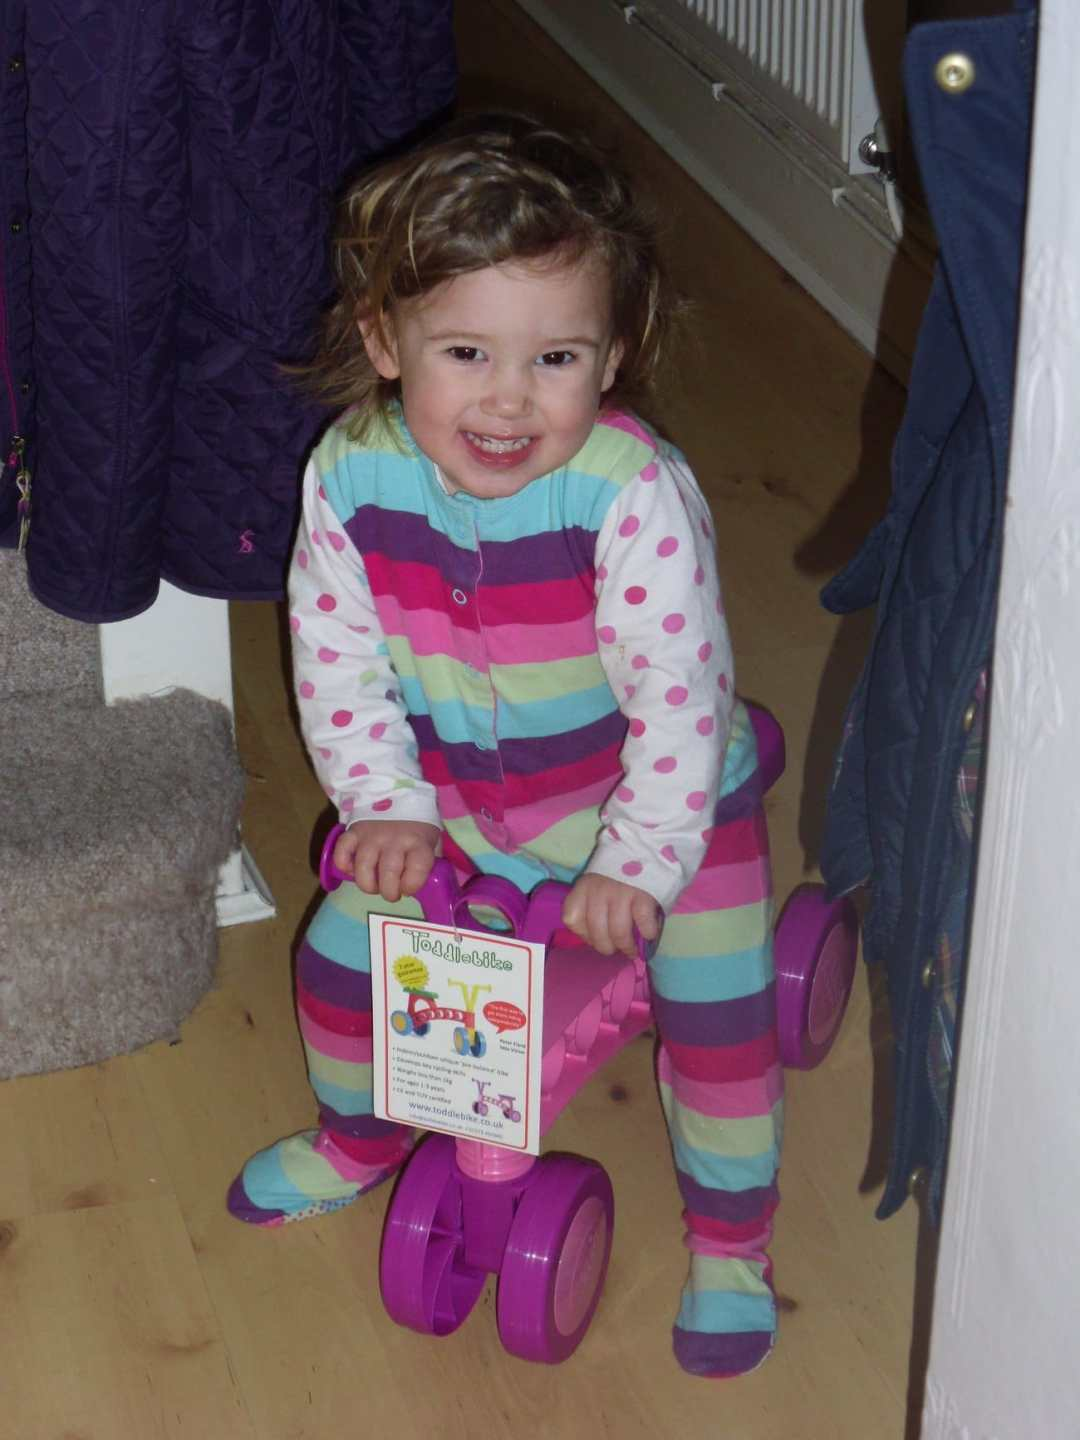 Loving her new Toddlebike!